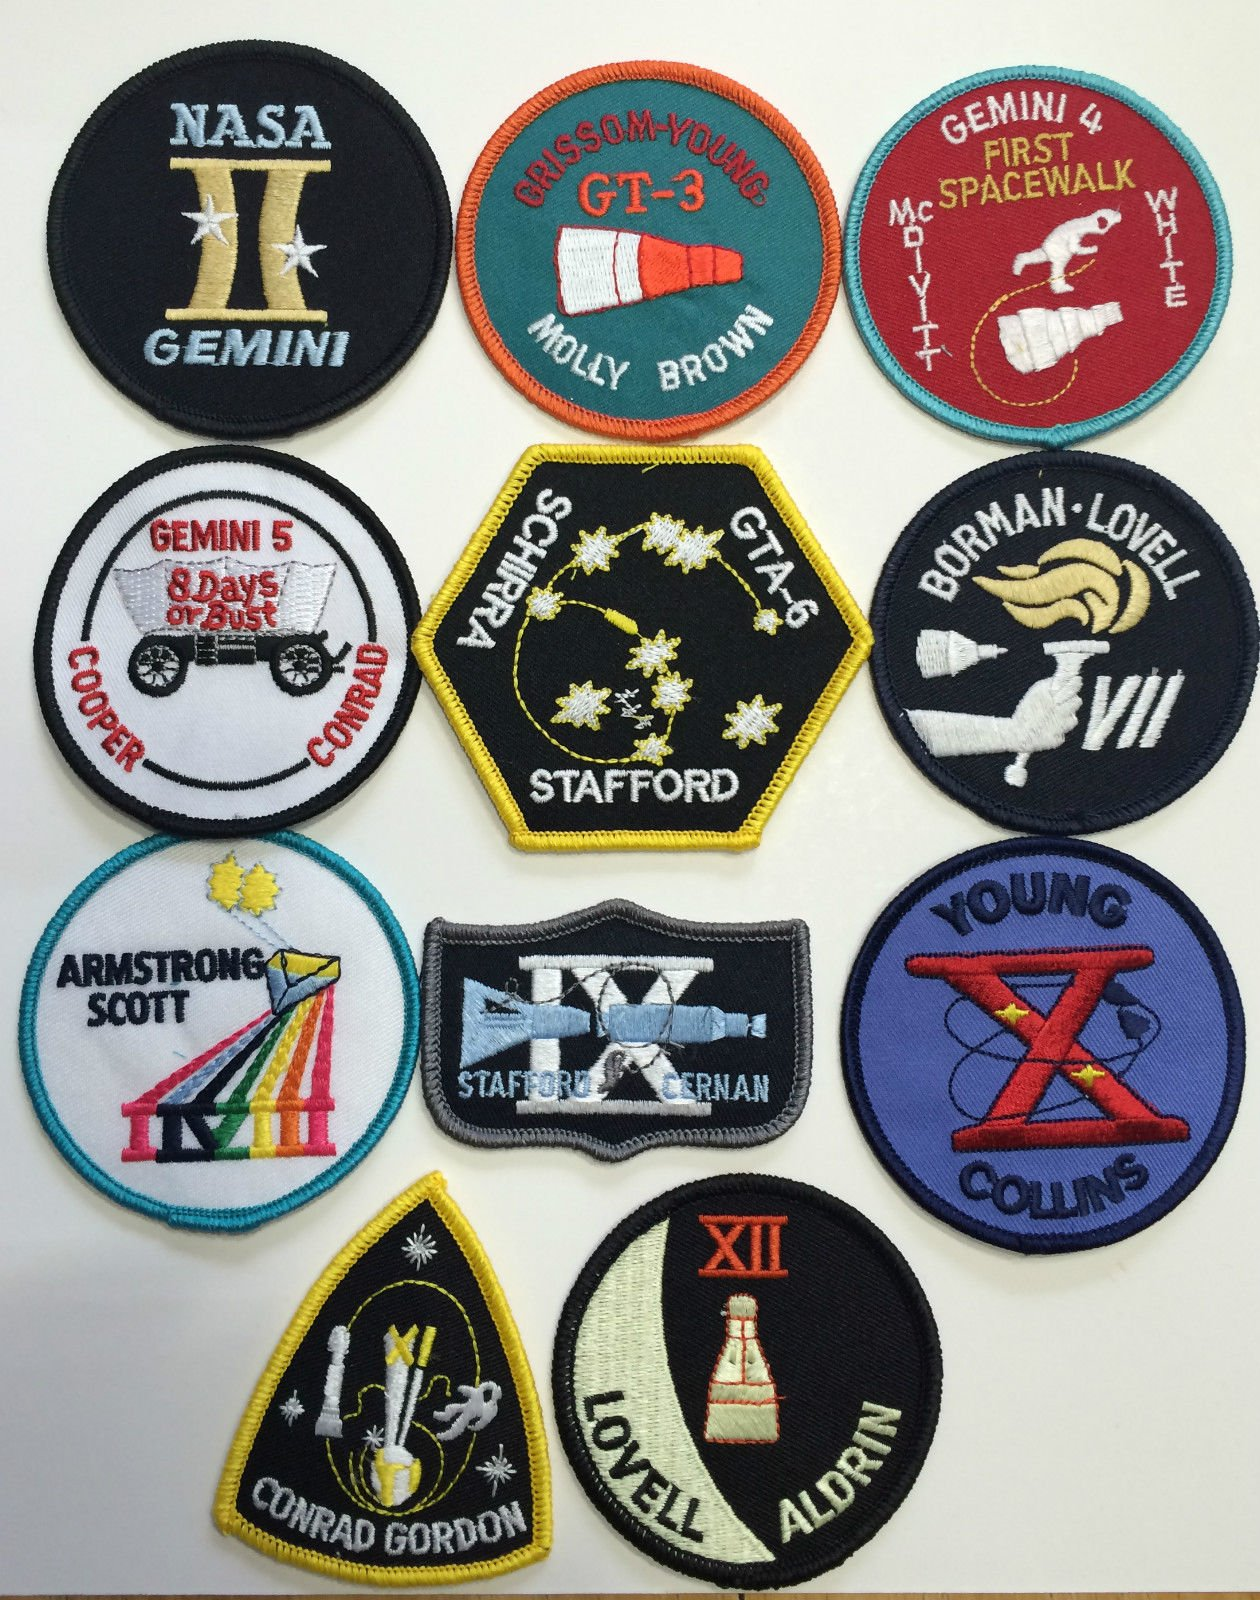 New Official Nasa Space Program Gemini Patch Emblem Set Made in USA Armstrong by NASA